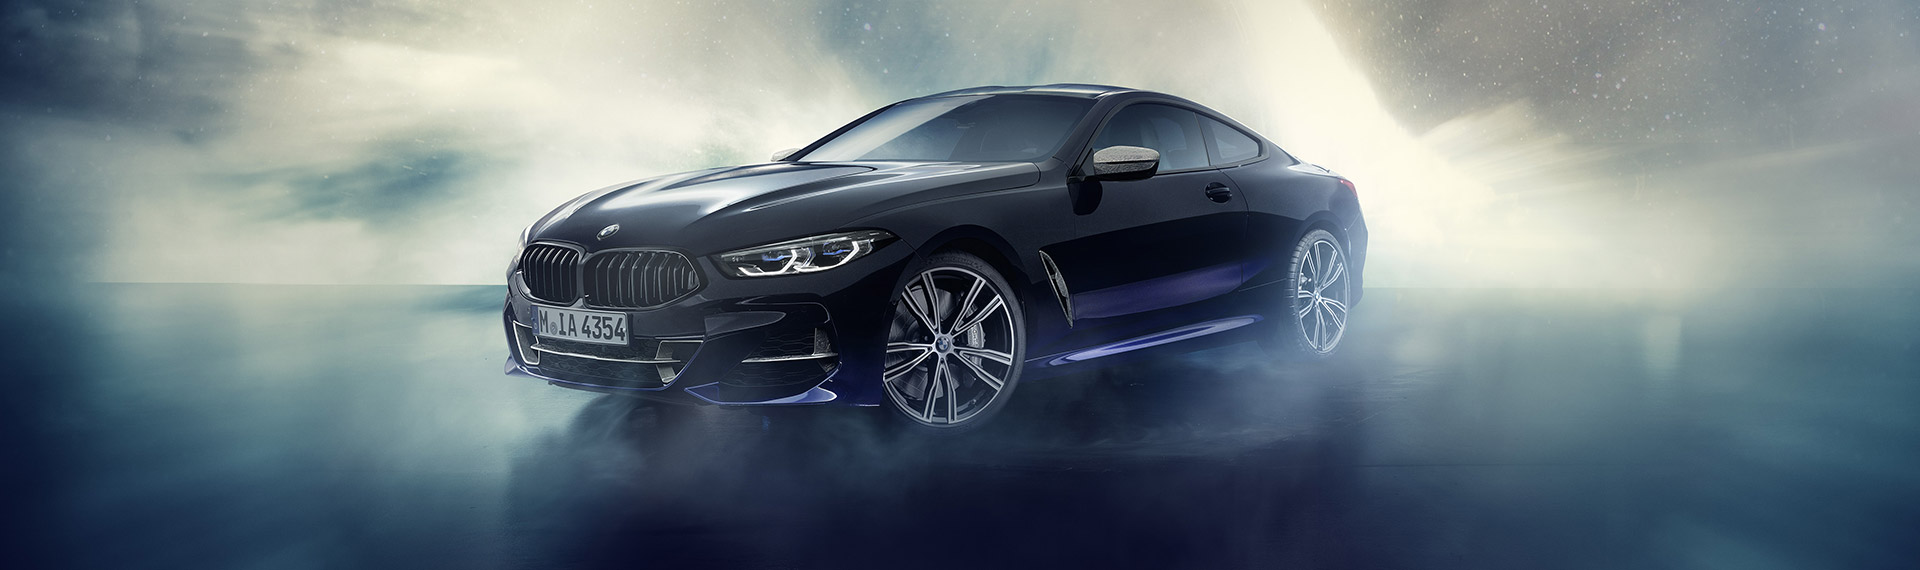 BMW Individual M850i Night Sky Front 3/4 View